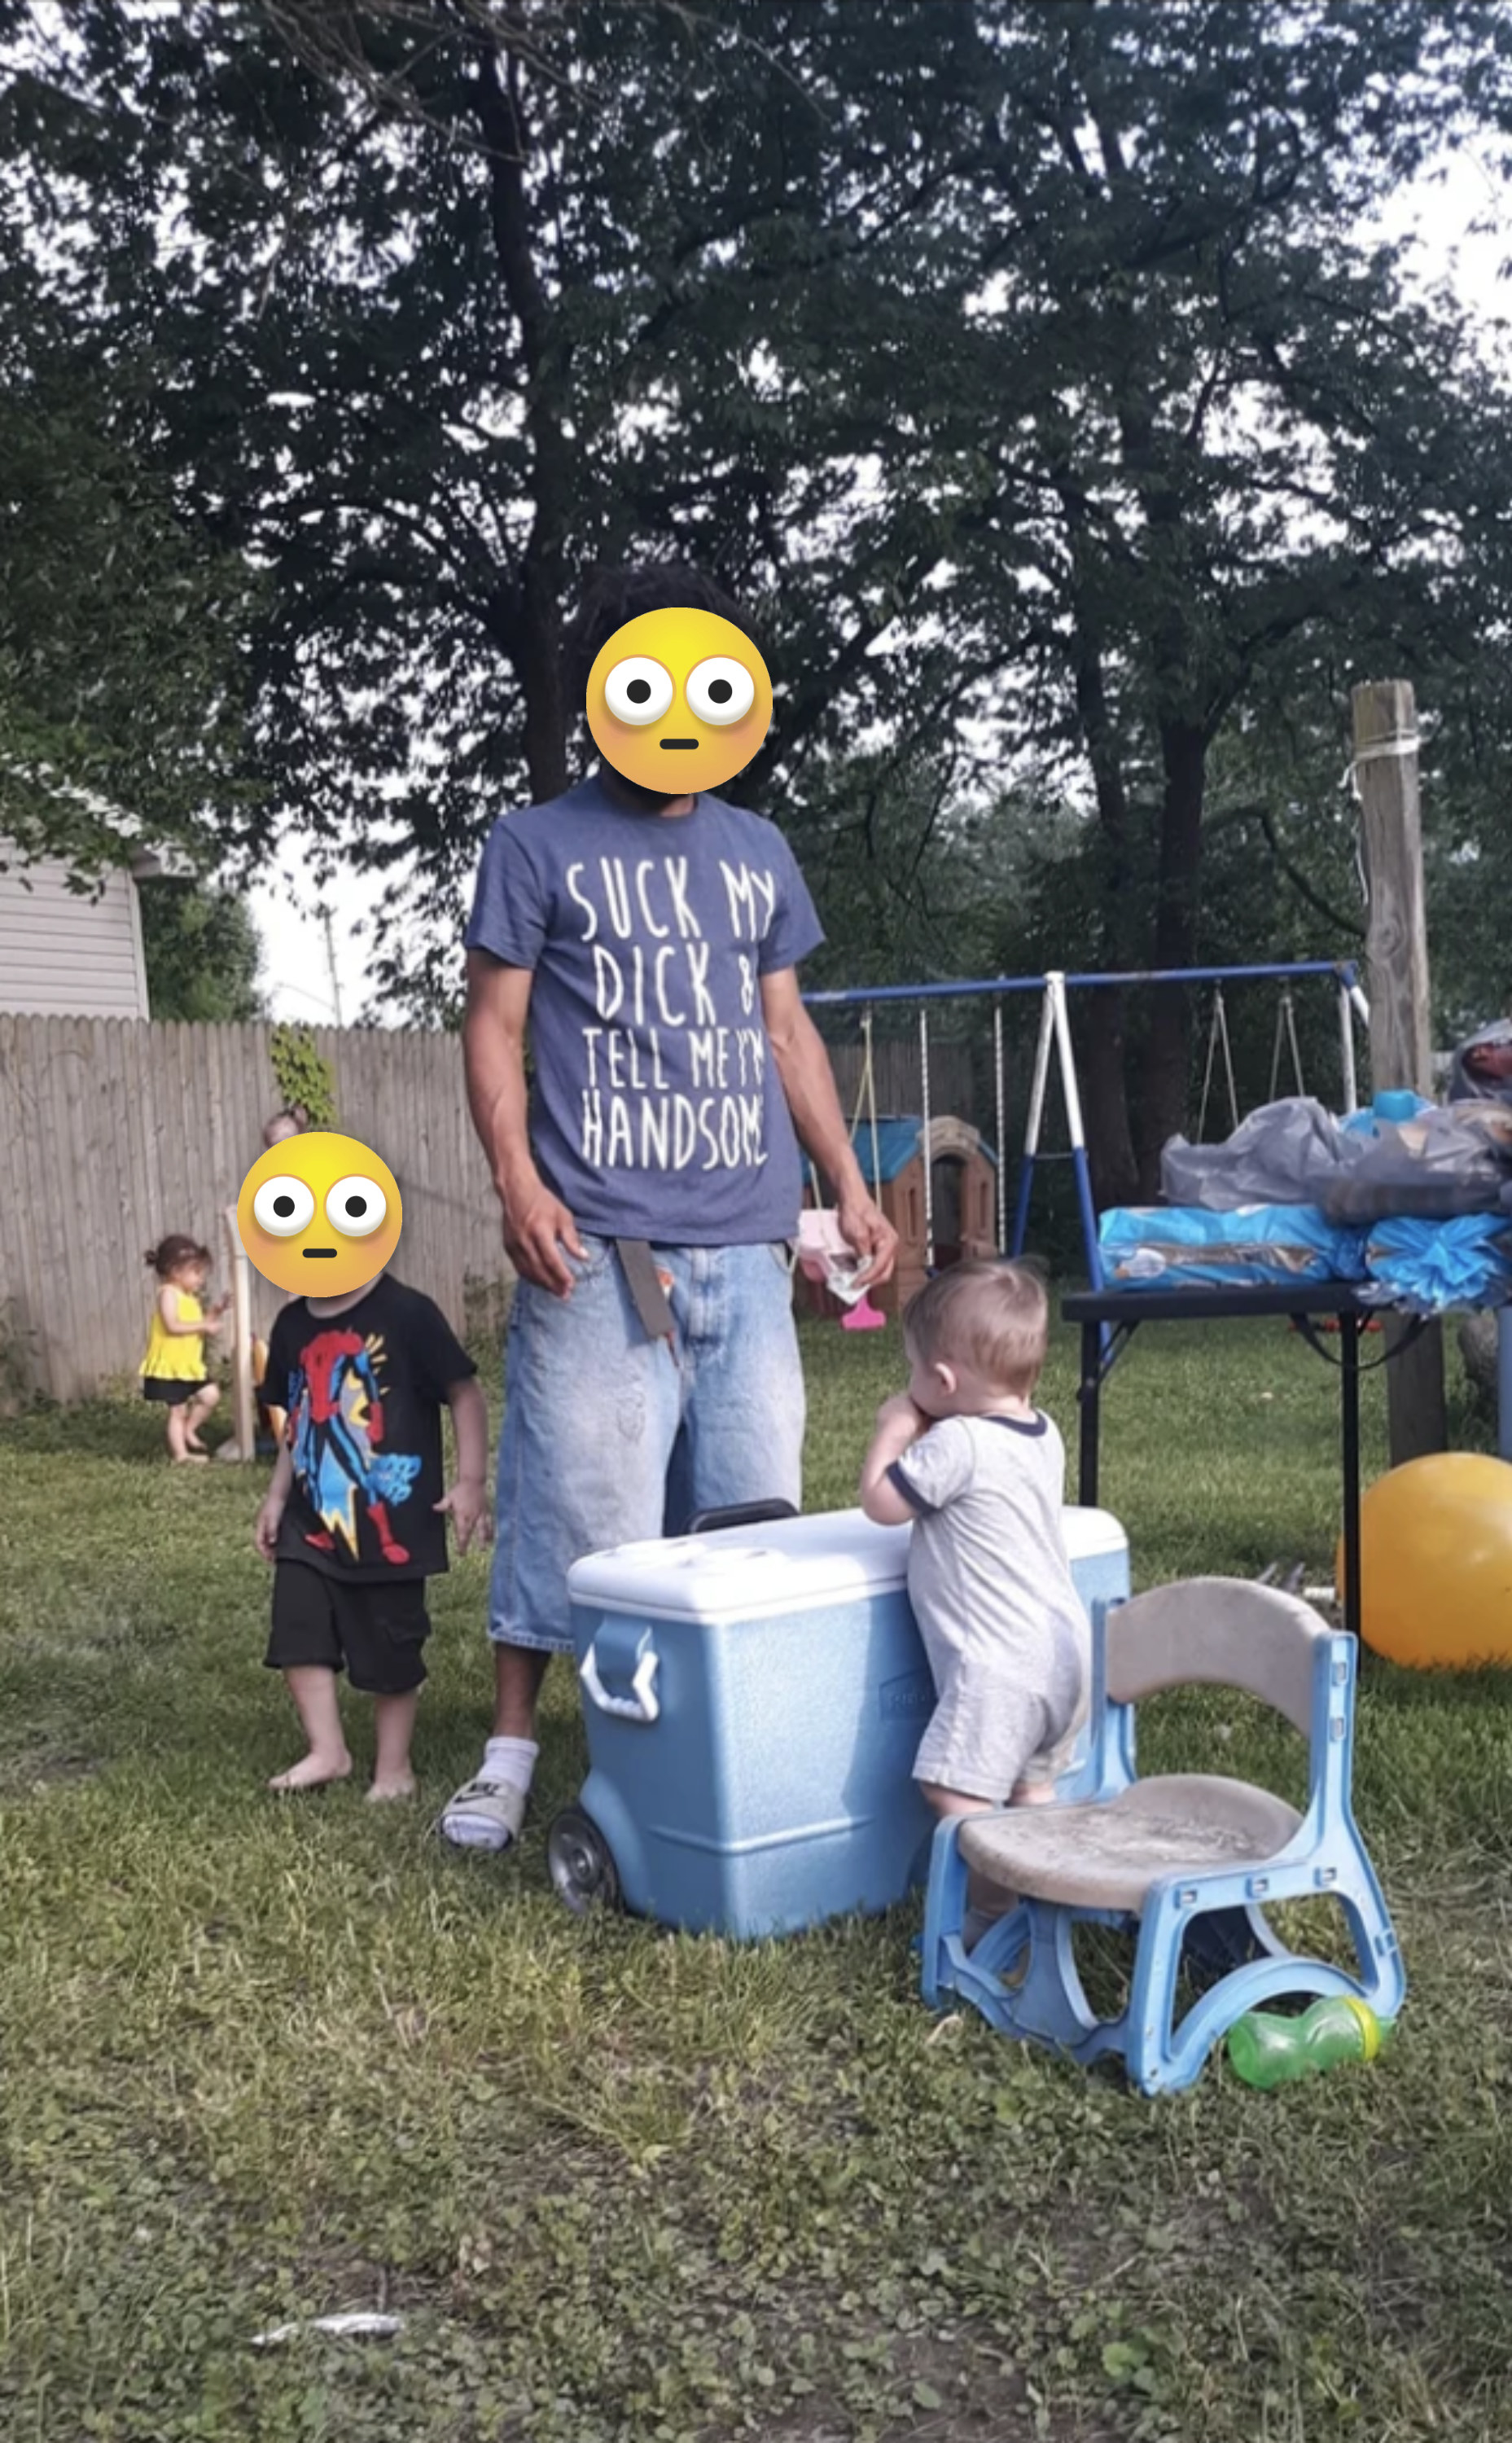 a man is surrounded by toddlers wearing a suck my dick t-shirt